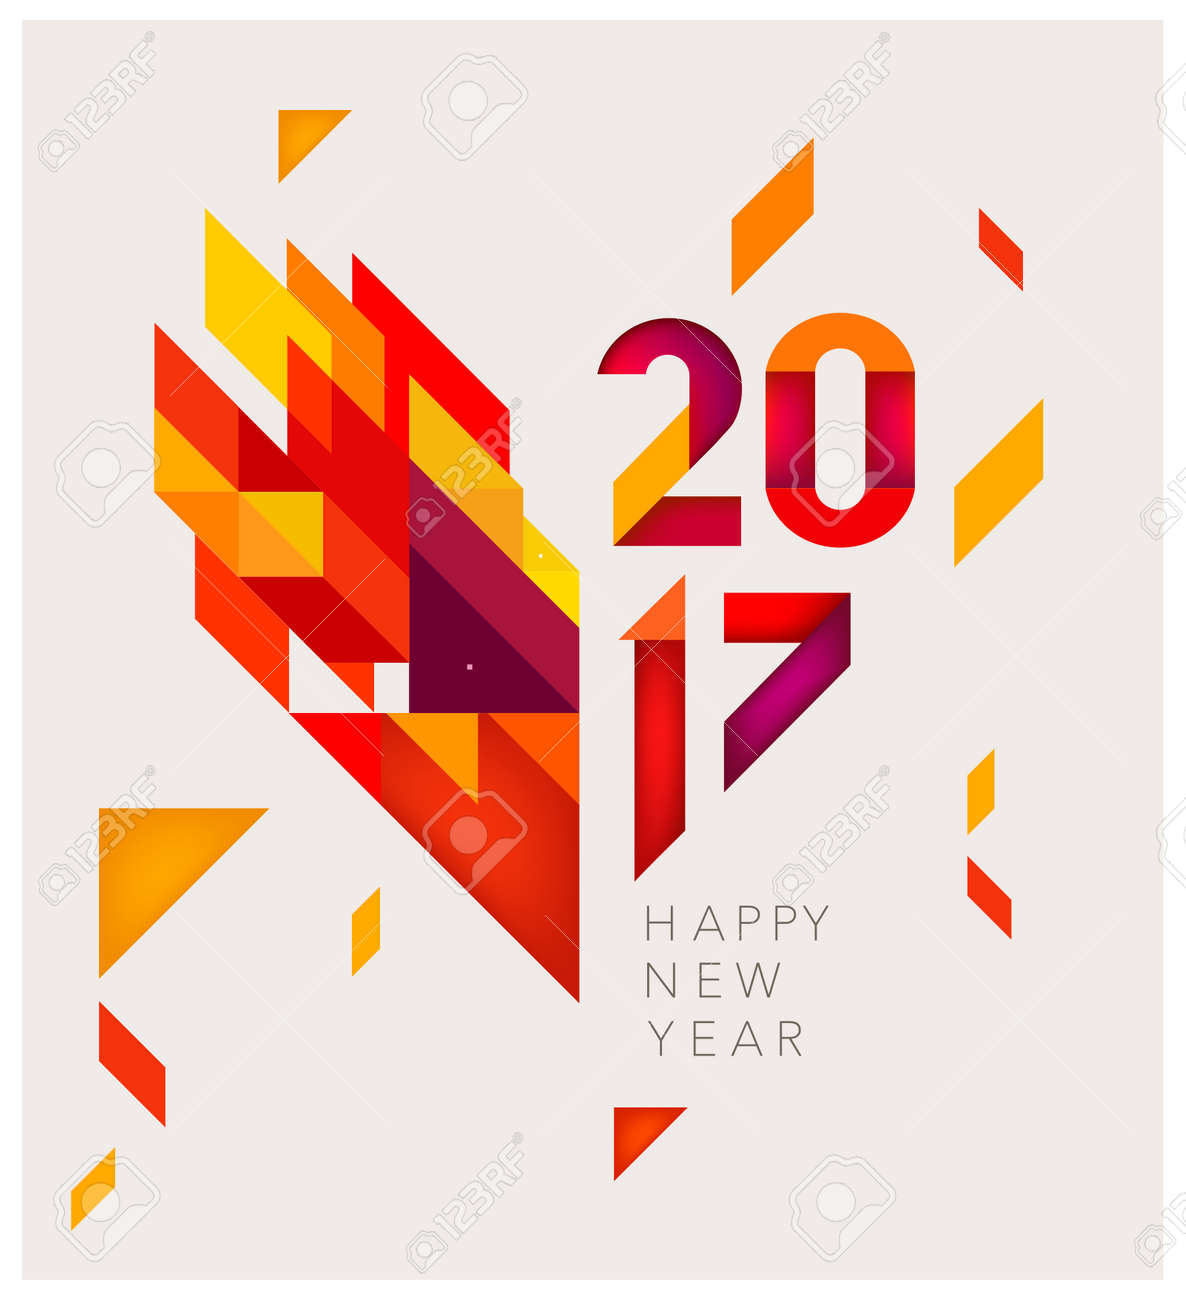 Minimalistic Vector abstract background. Red and yellow geometric shapes. New Year 2017. - 65663573